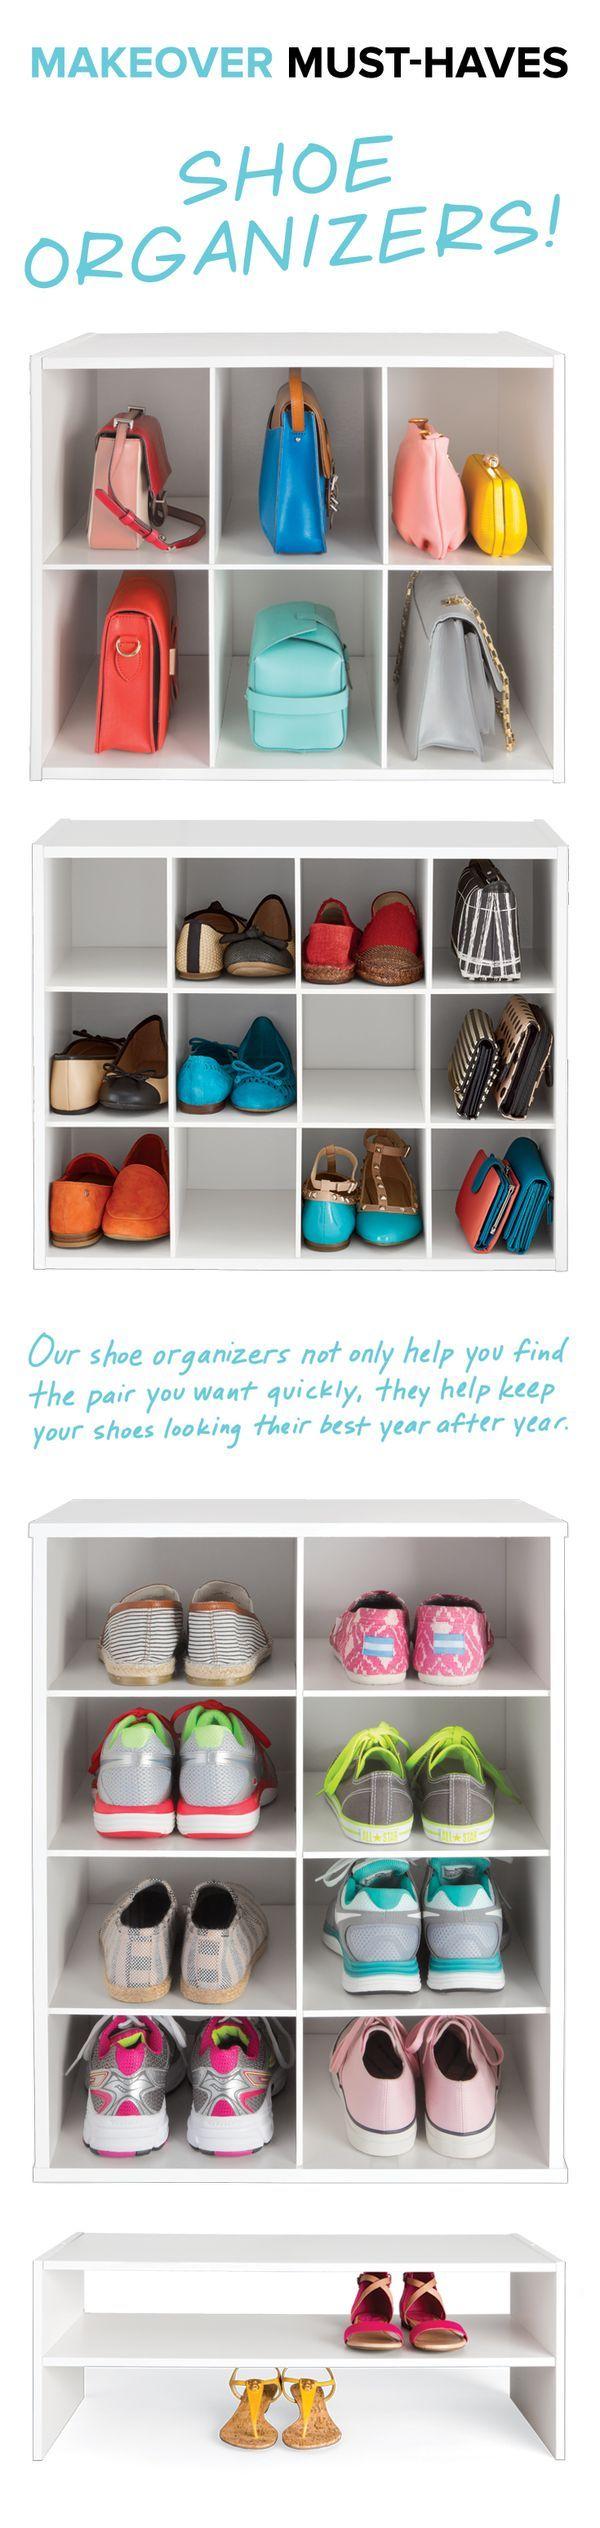 Shoes. Shoes. Shoes. No matter how many pair you have, protect them with our Shoe Organizers. They can be used on the floor or up on a shelf.